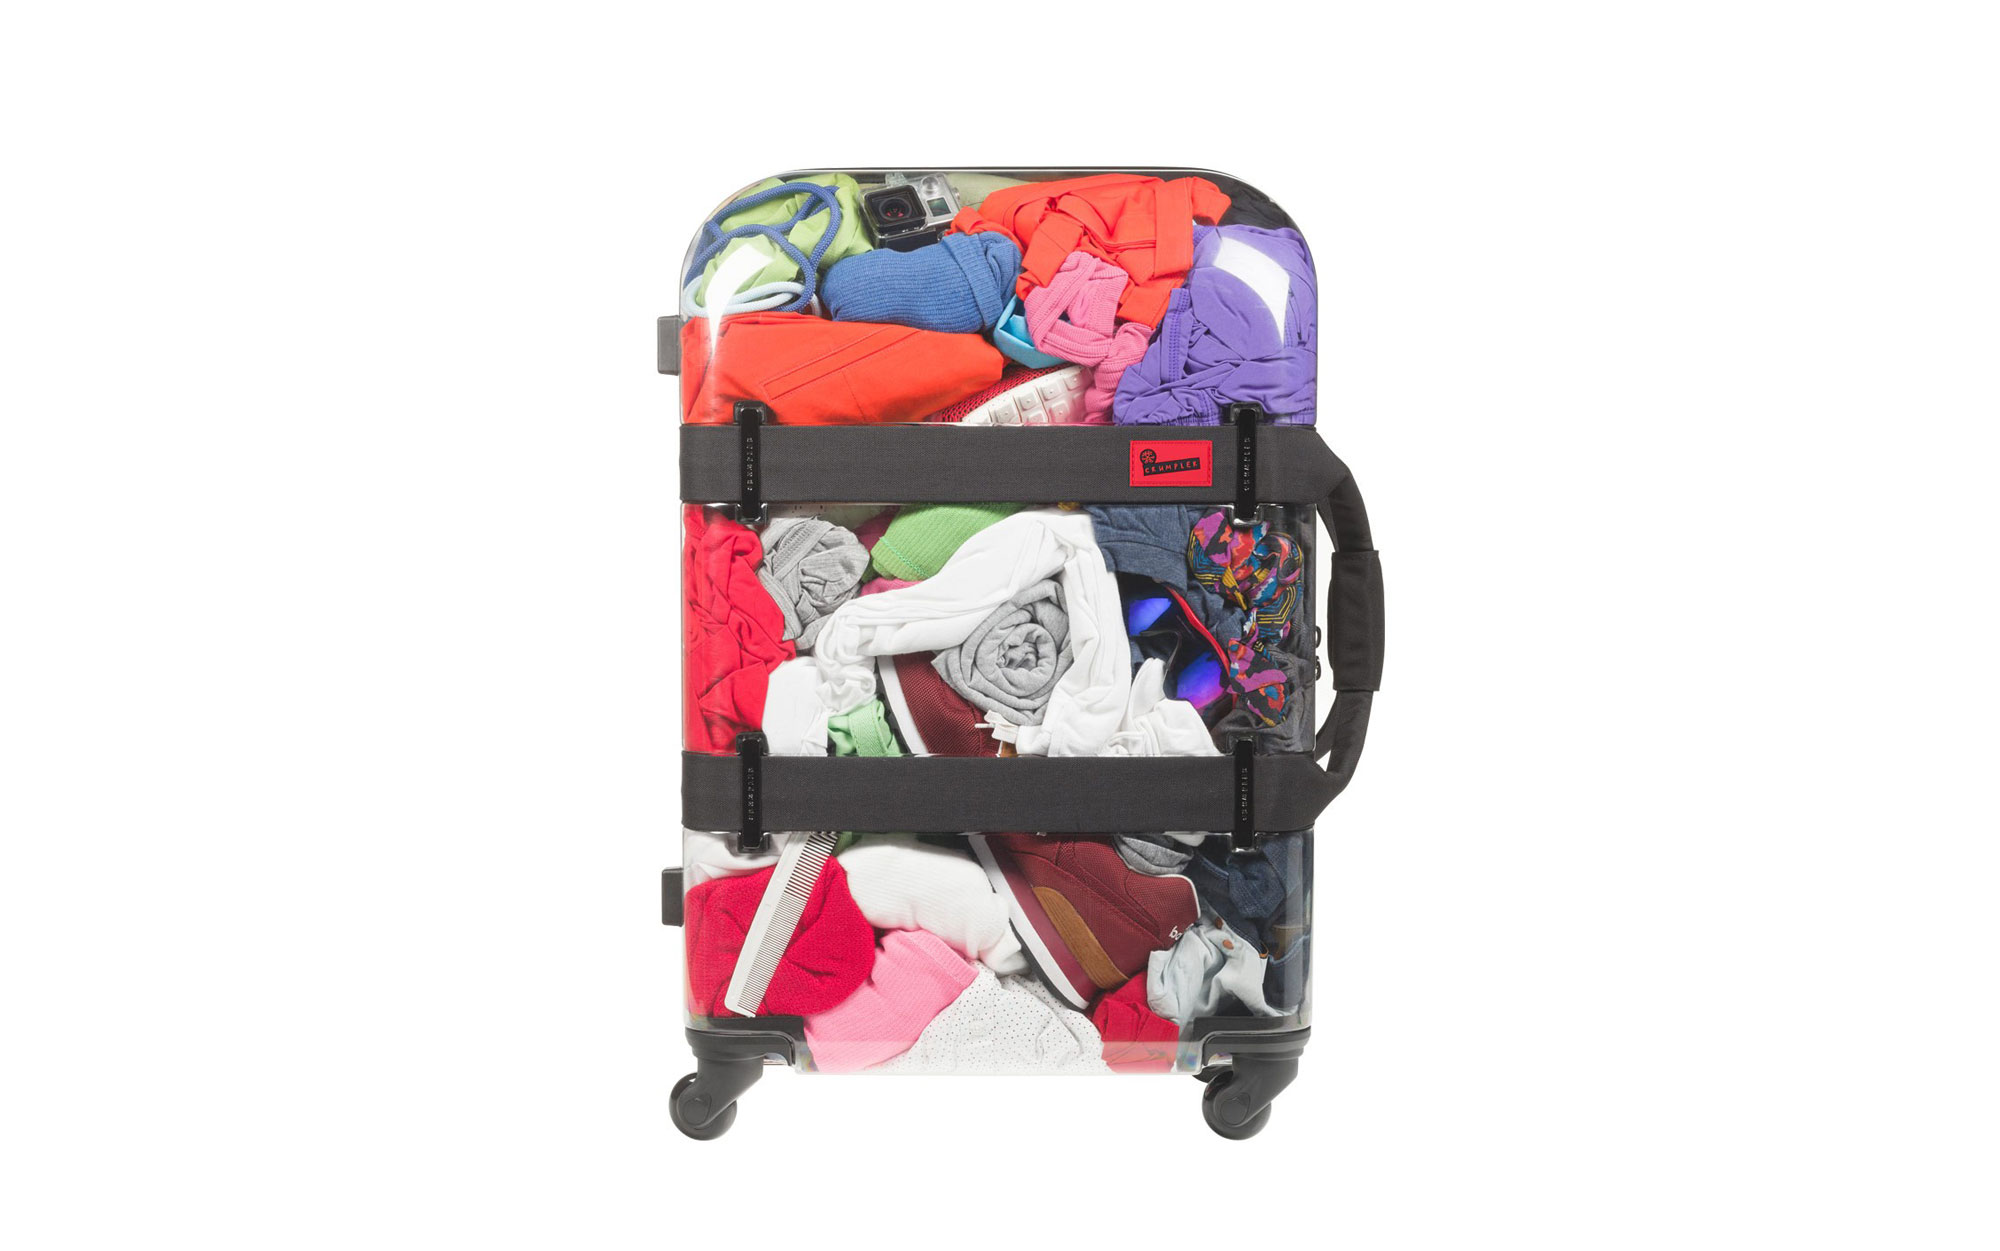 Show off your belongings in a see-through suitcase